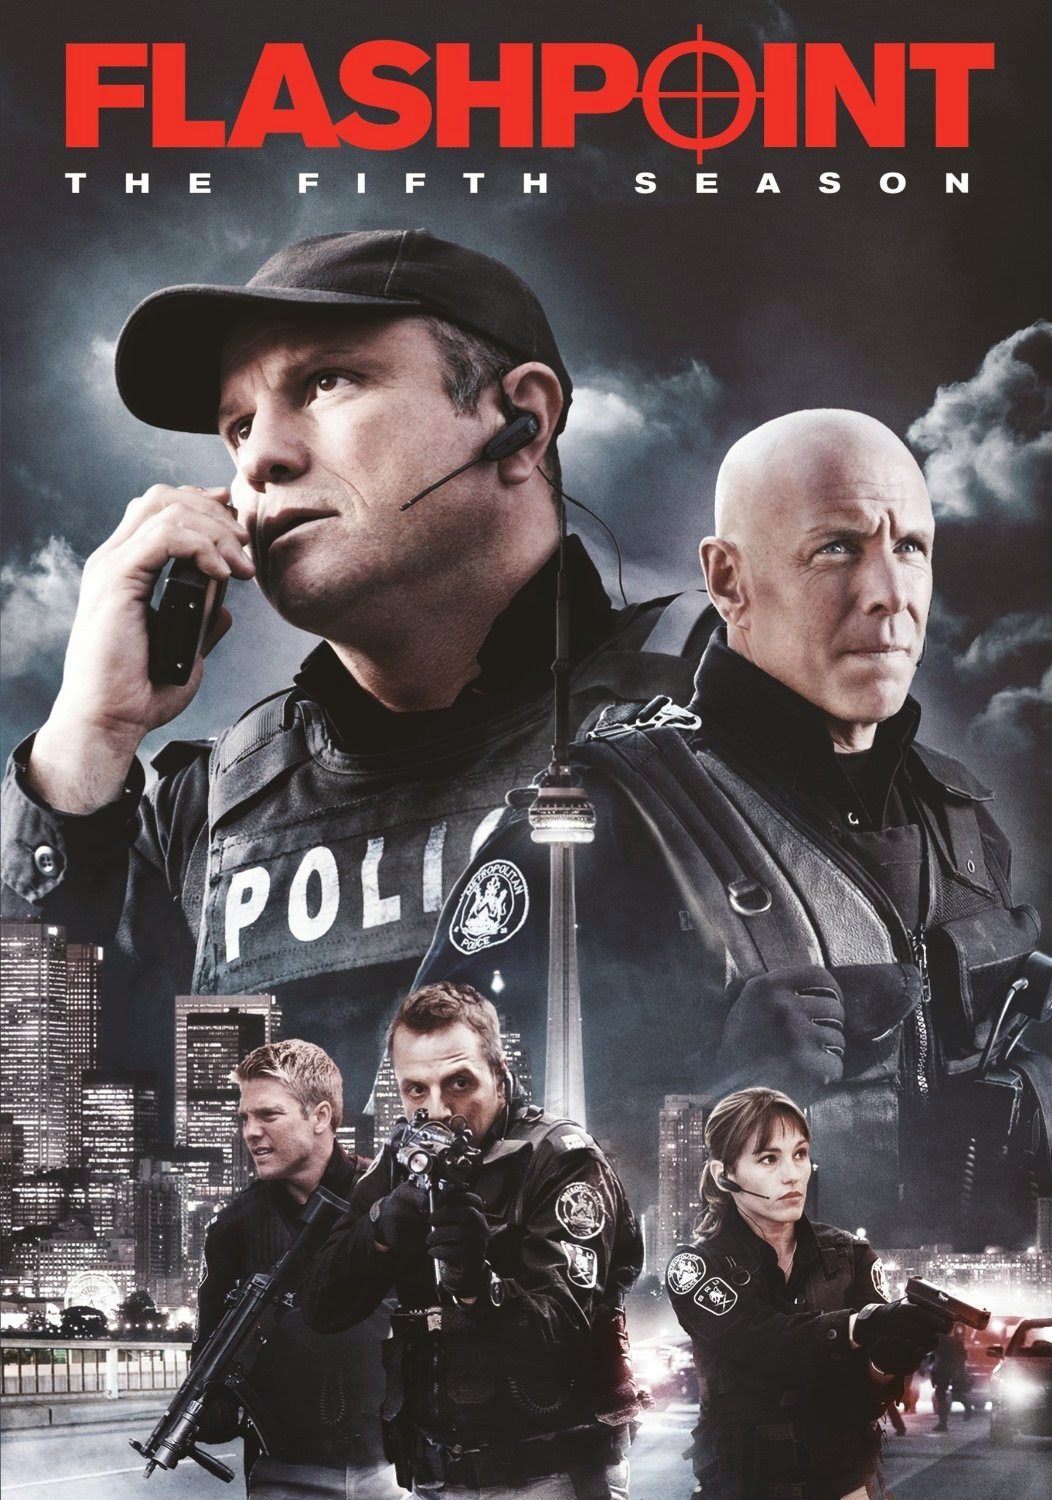 Flashpoint – Todas as Temporadas Dublado / Legendado (2008)